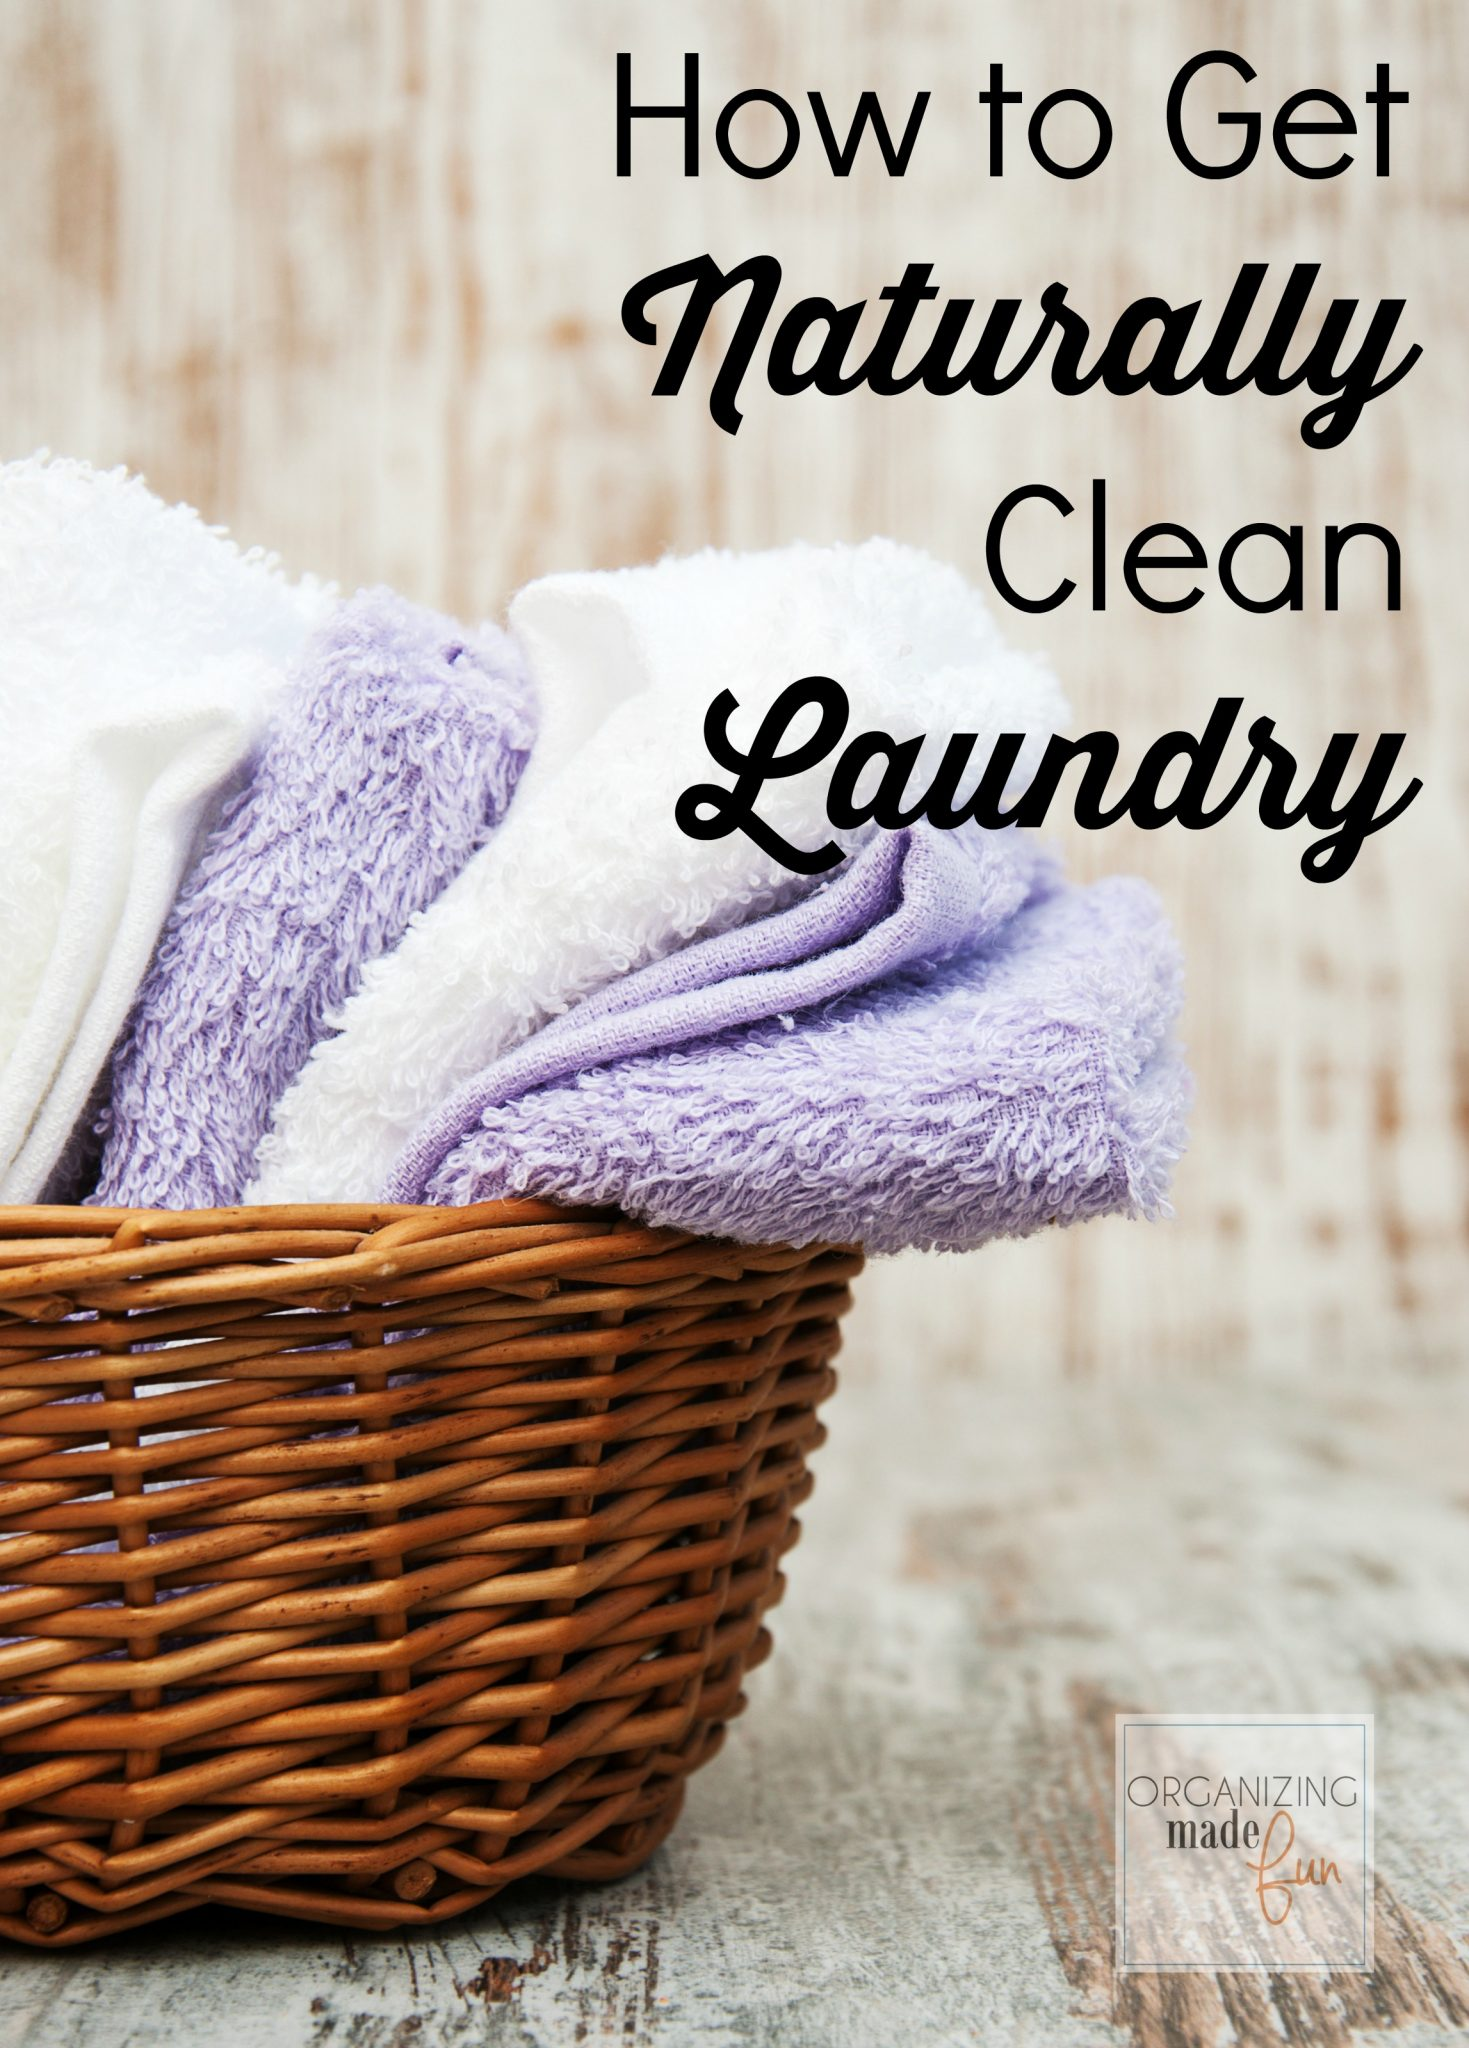 How To Get Naturally Clean Laundry